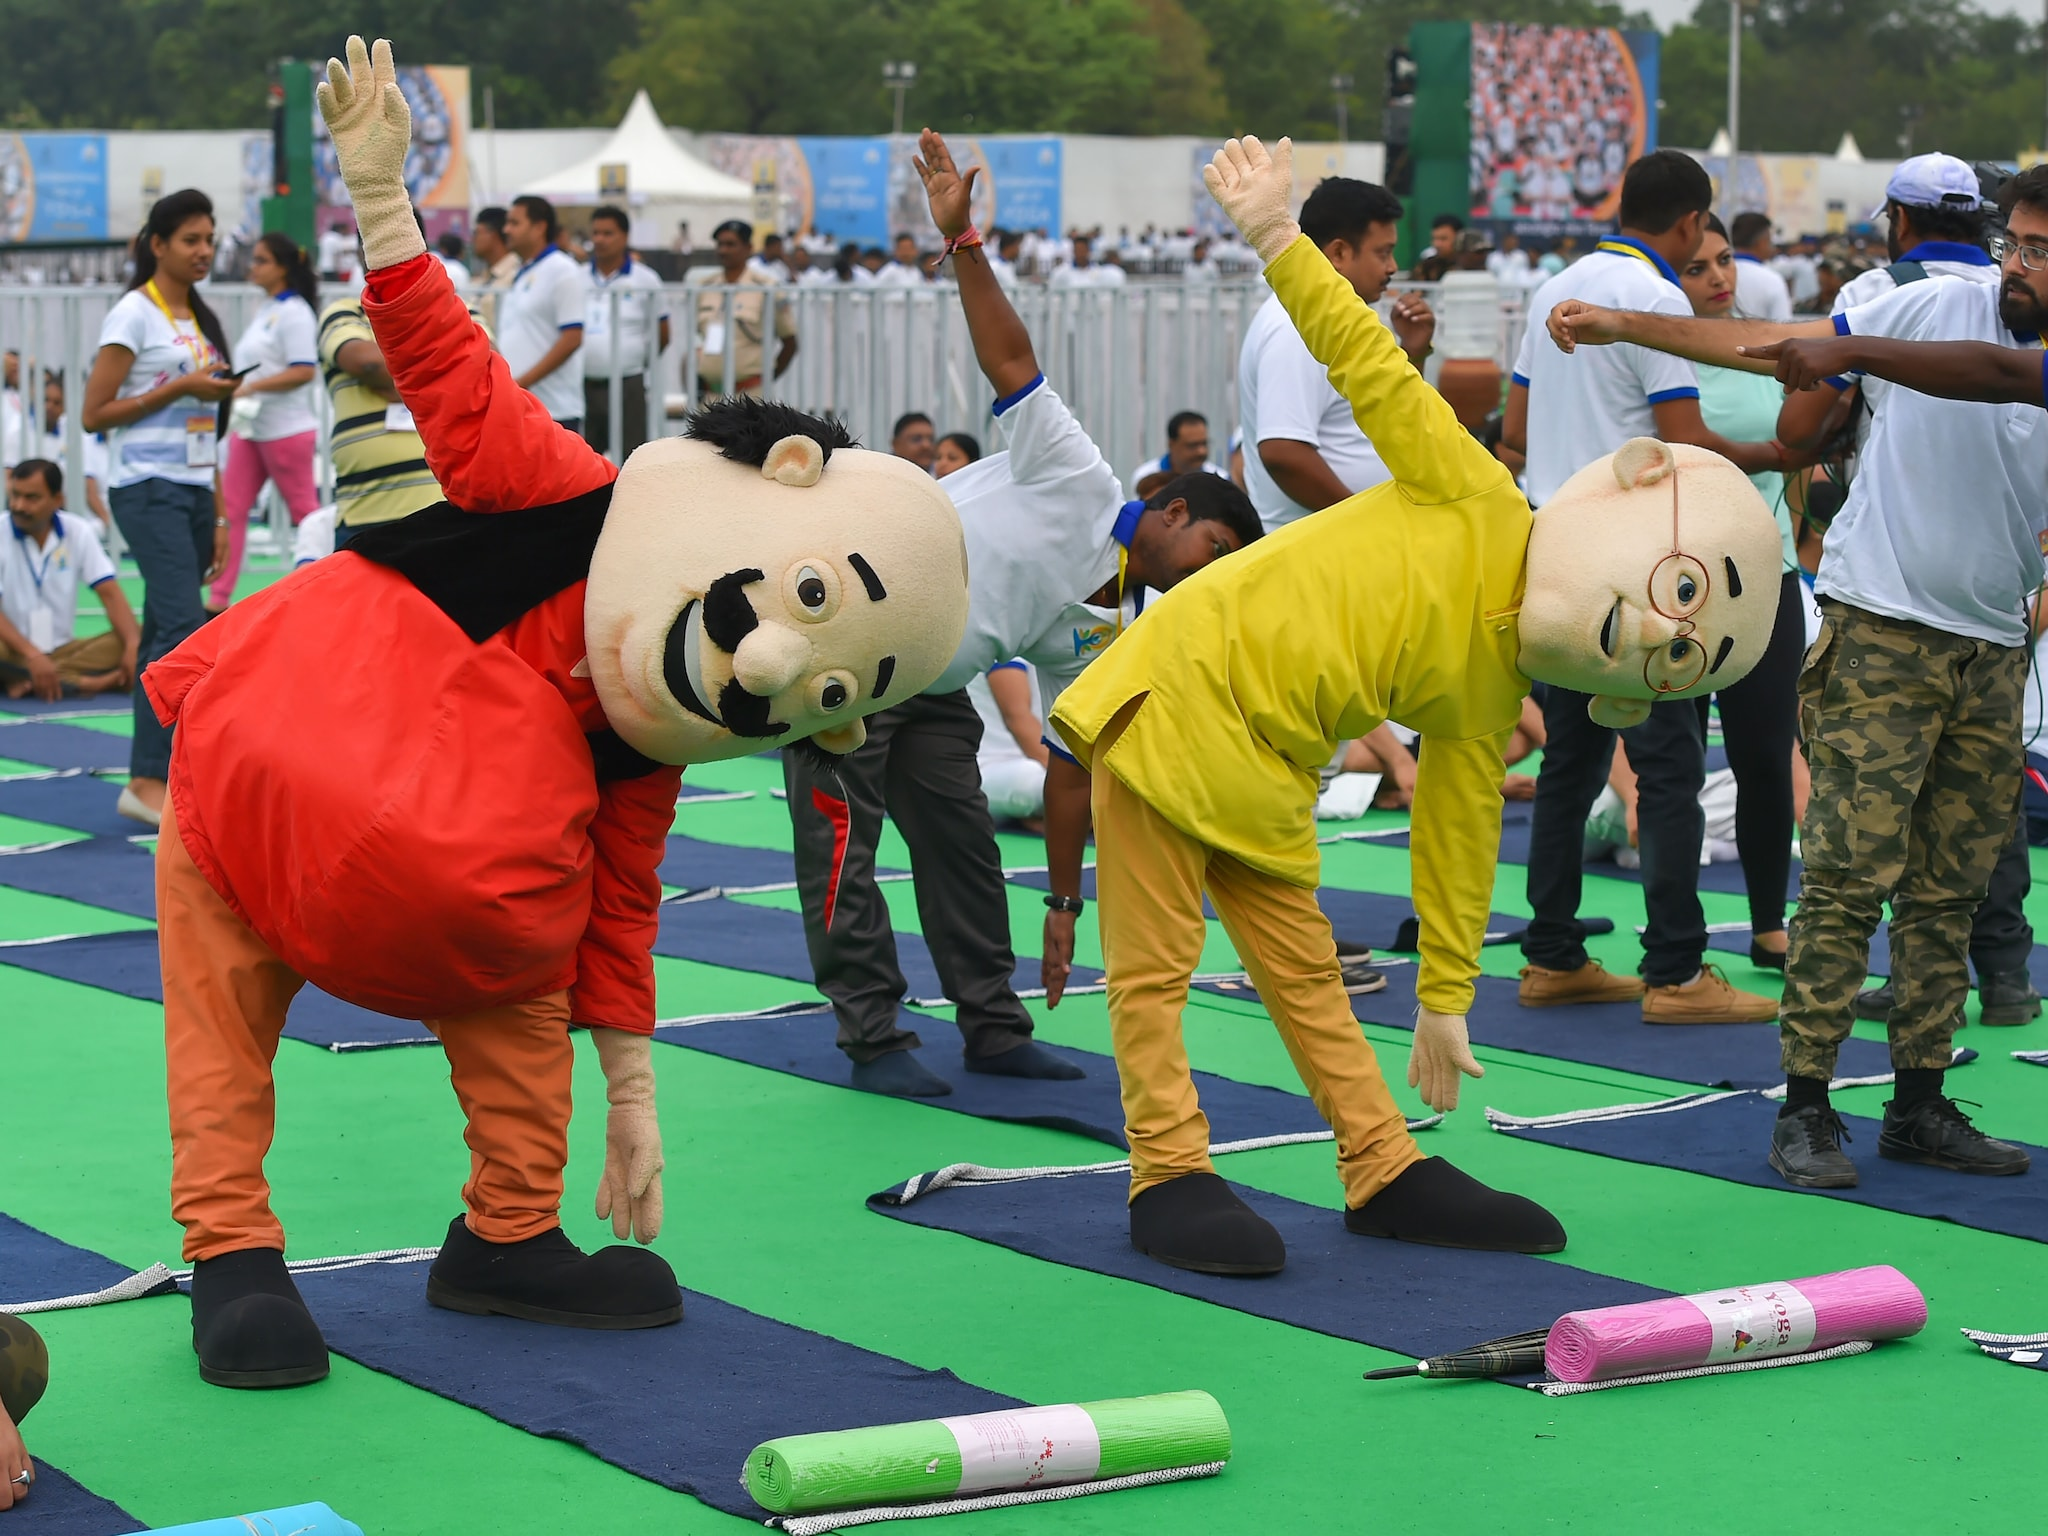 Ranchi: Indian animated characters Motu Patlu perform yoga during a mass yoga event on the 5th International Day of Yoga at Prabhat Tara ground, in Ranchi, Friday, June 21, 2019. (PTI Photo/Kamal Kishore)